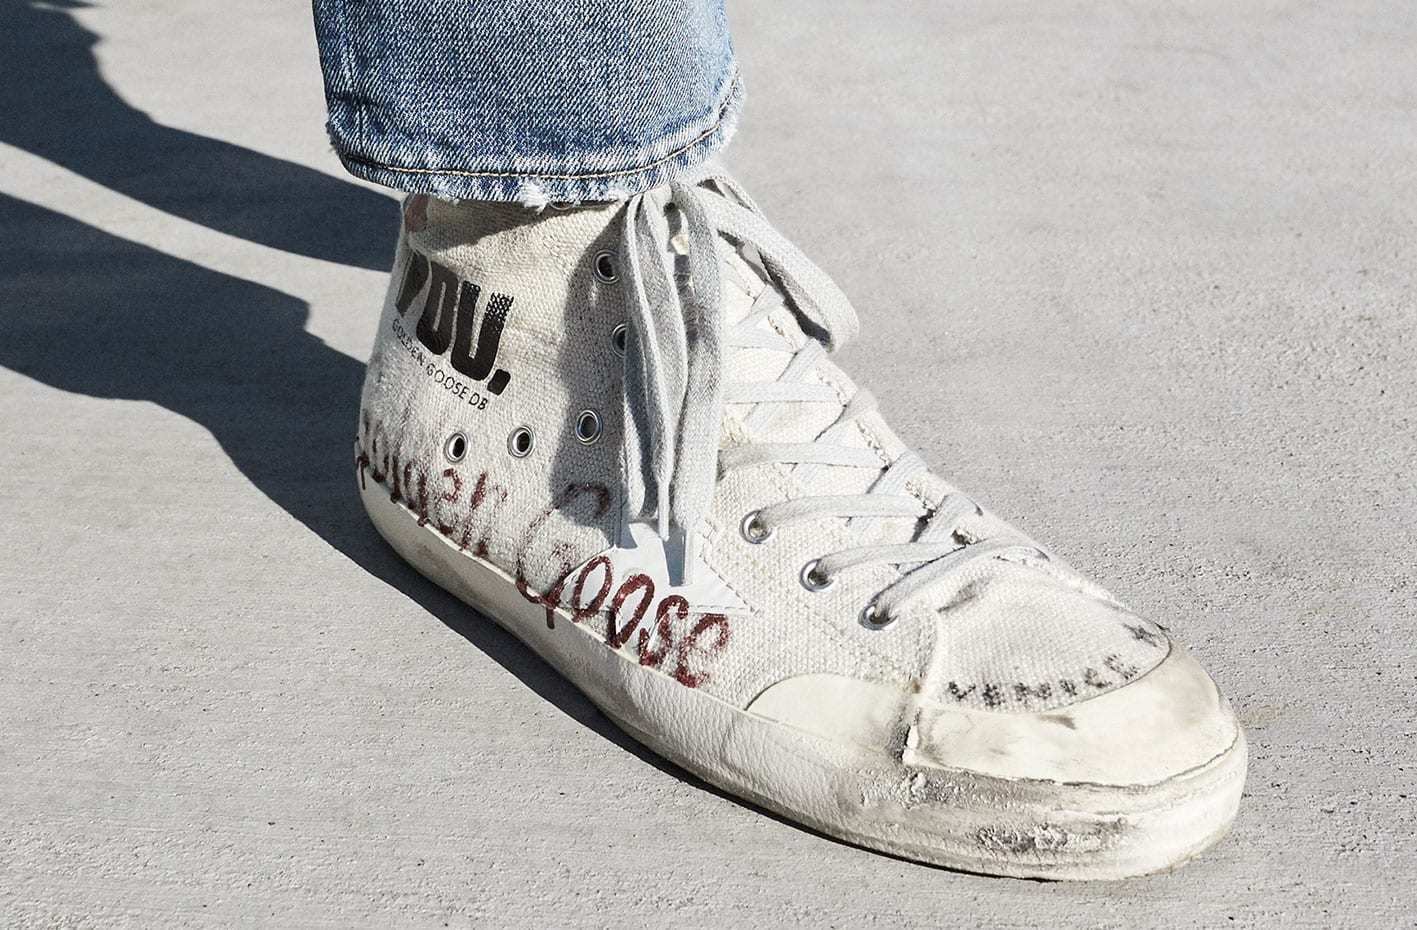 Quel Est Le Secret De Fabrication Des Sneakers Golden Goose Deluxe Brand ?